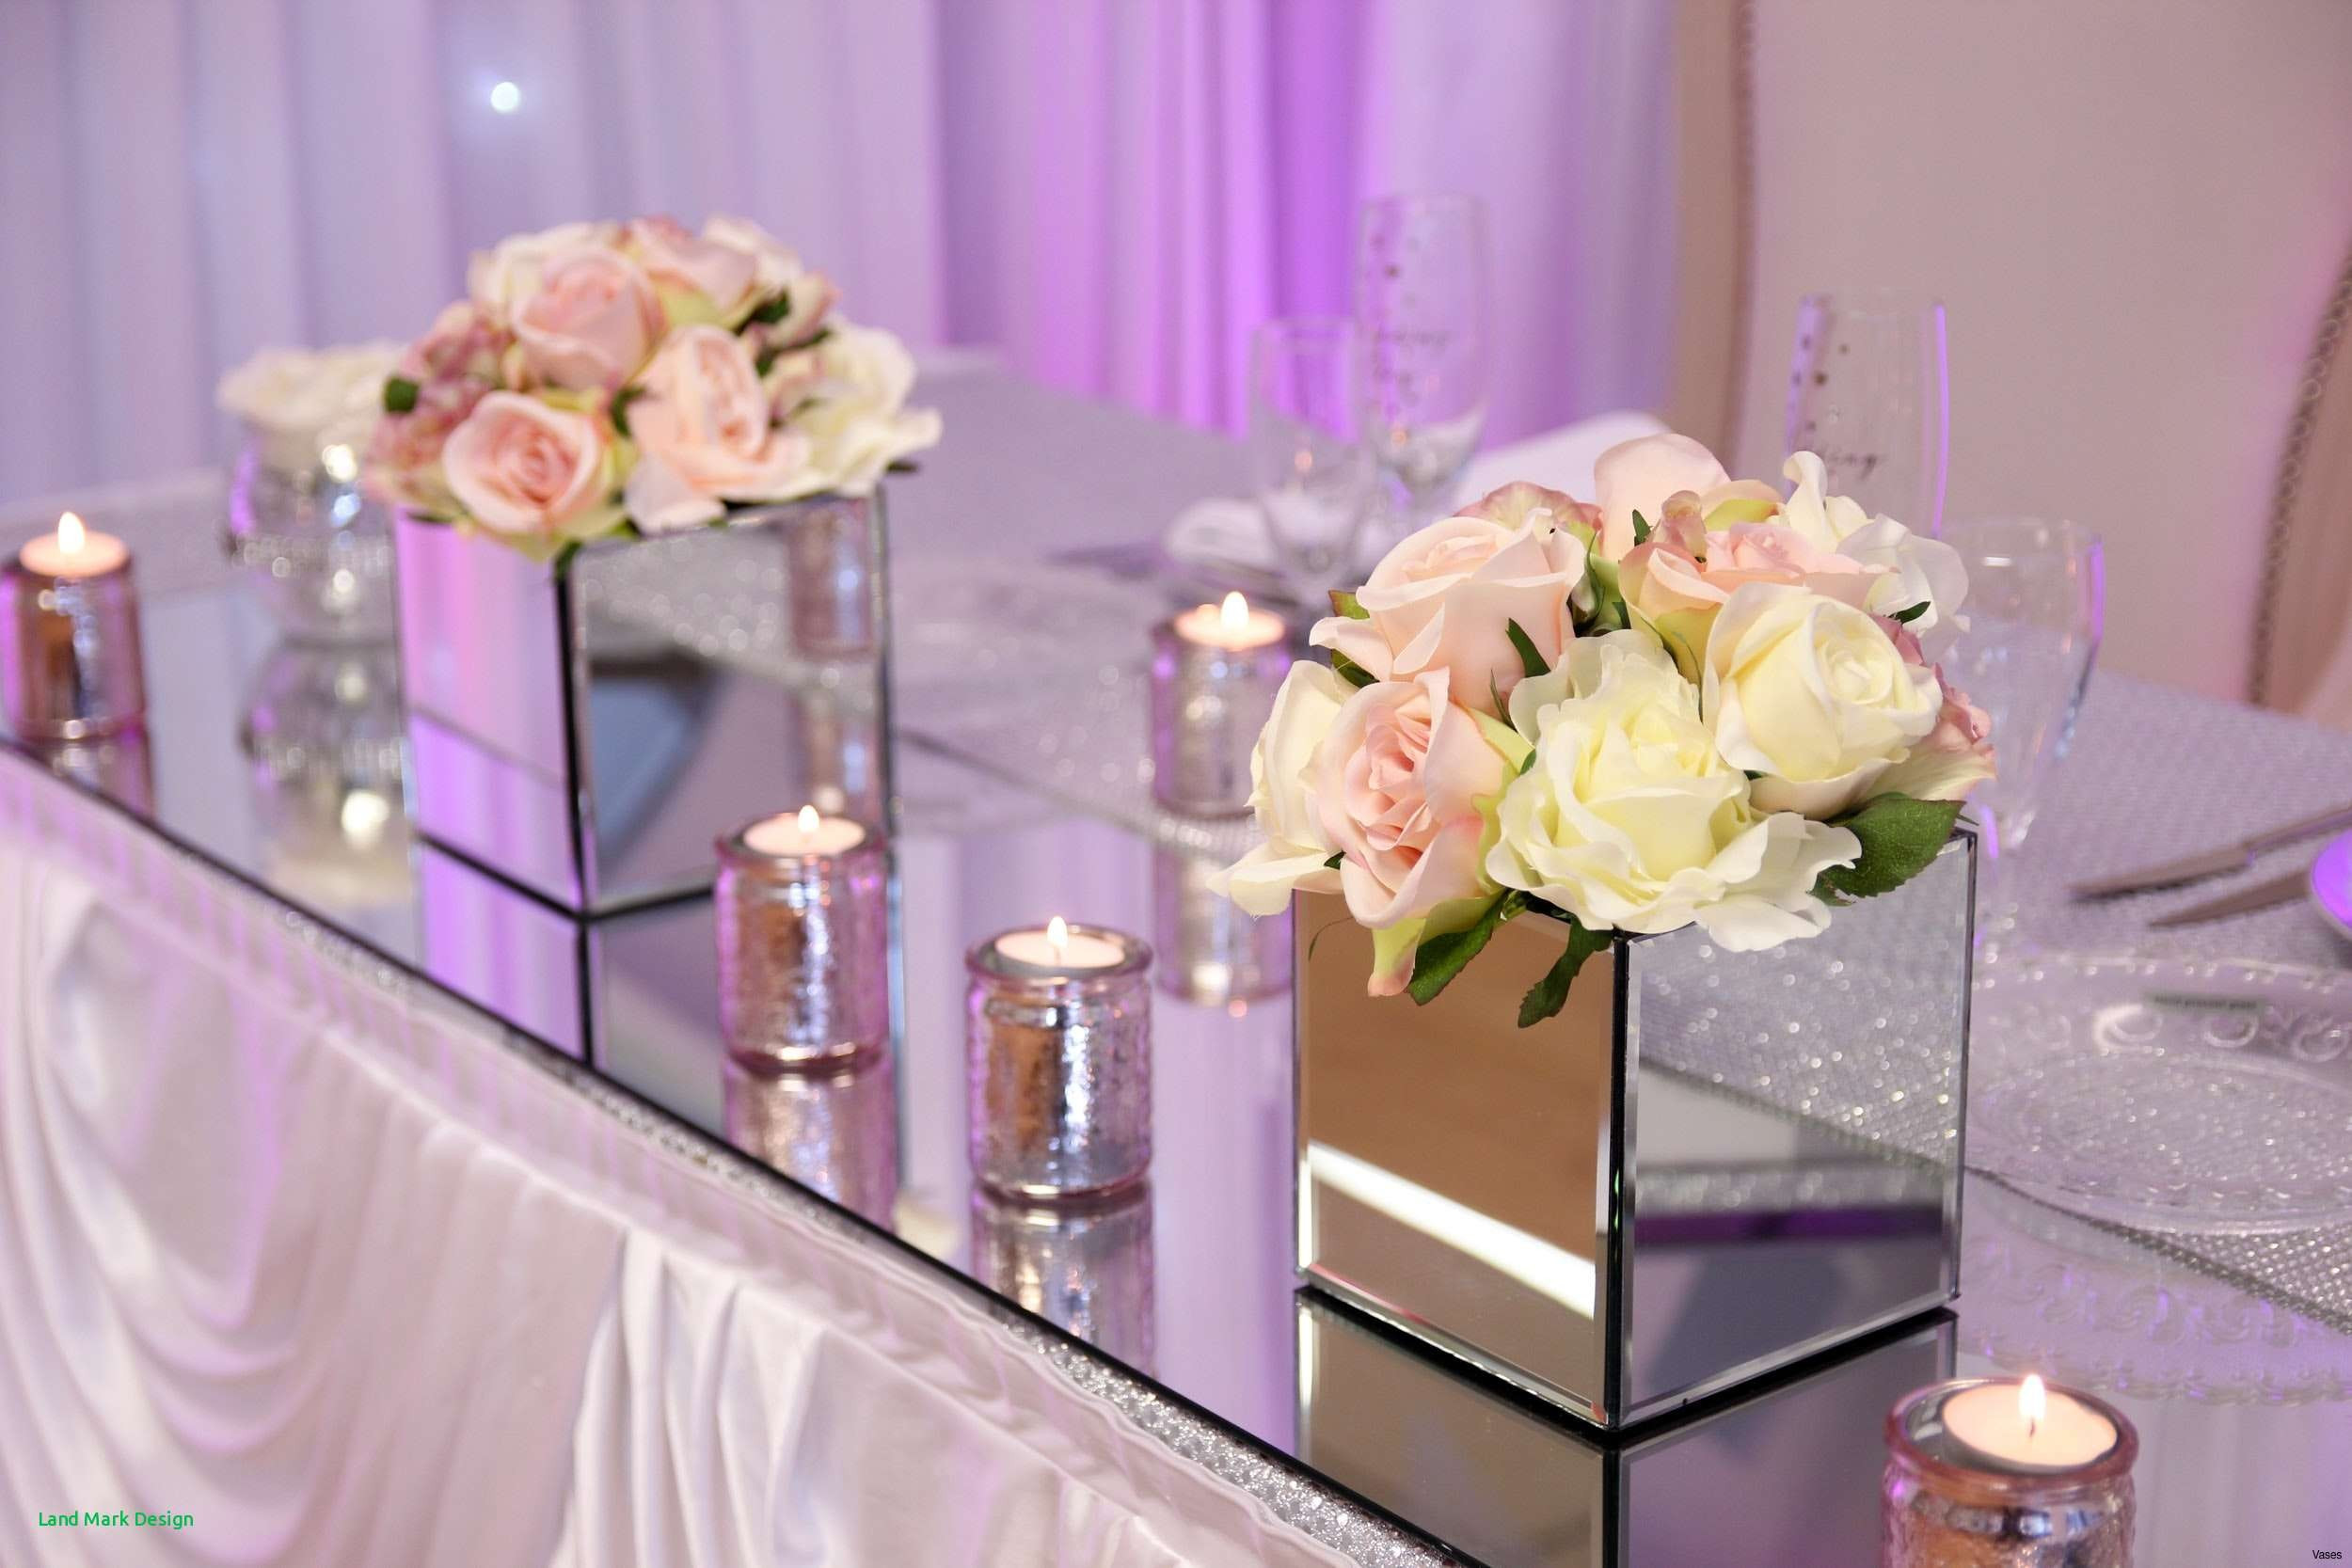 Ebay Vases for Sale Of 23 Luxury Sell Wedding Decorations Starsteachmusic Com with Regard to Sell Wedding Decorations New Table Centerpieces Ideas